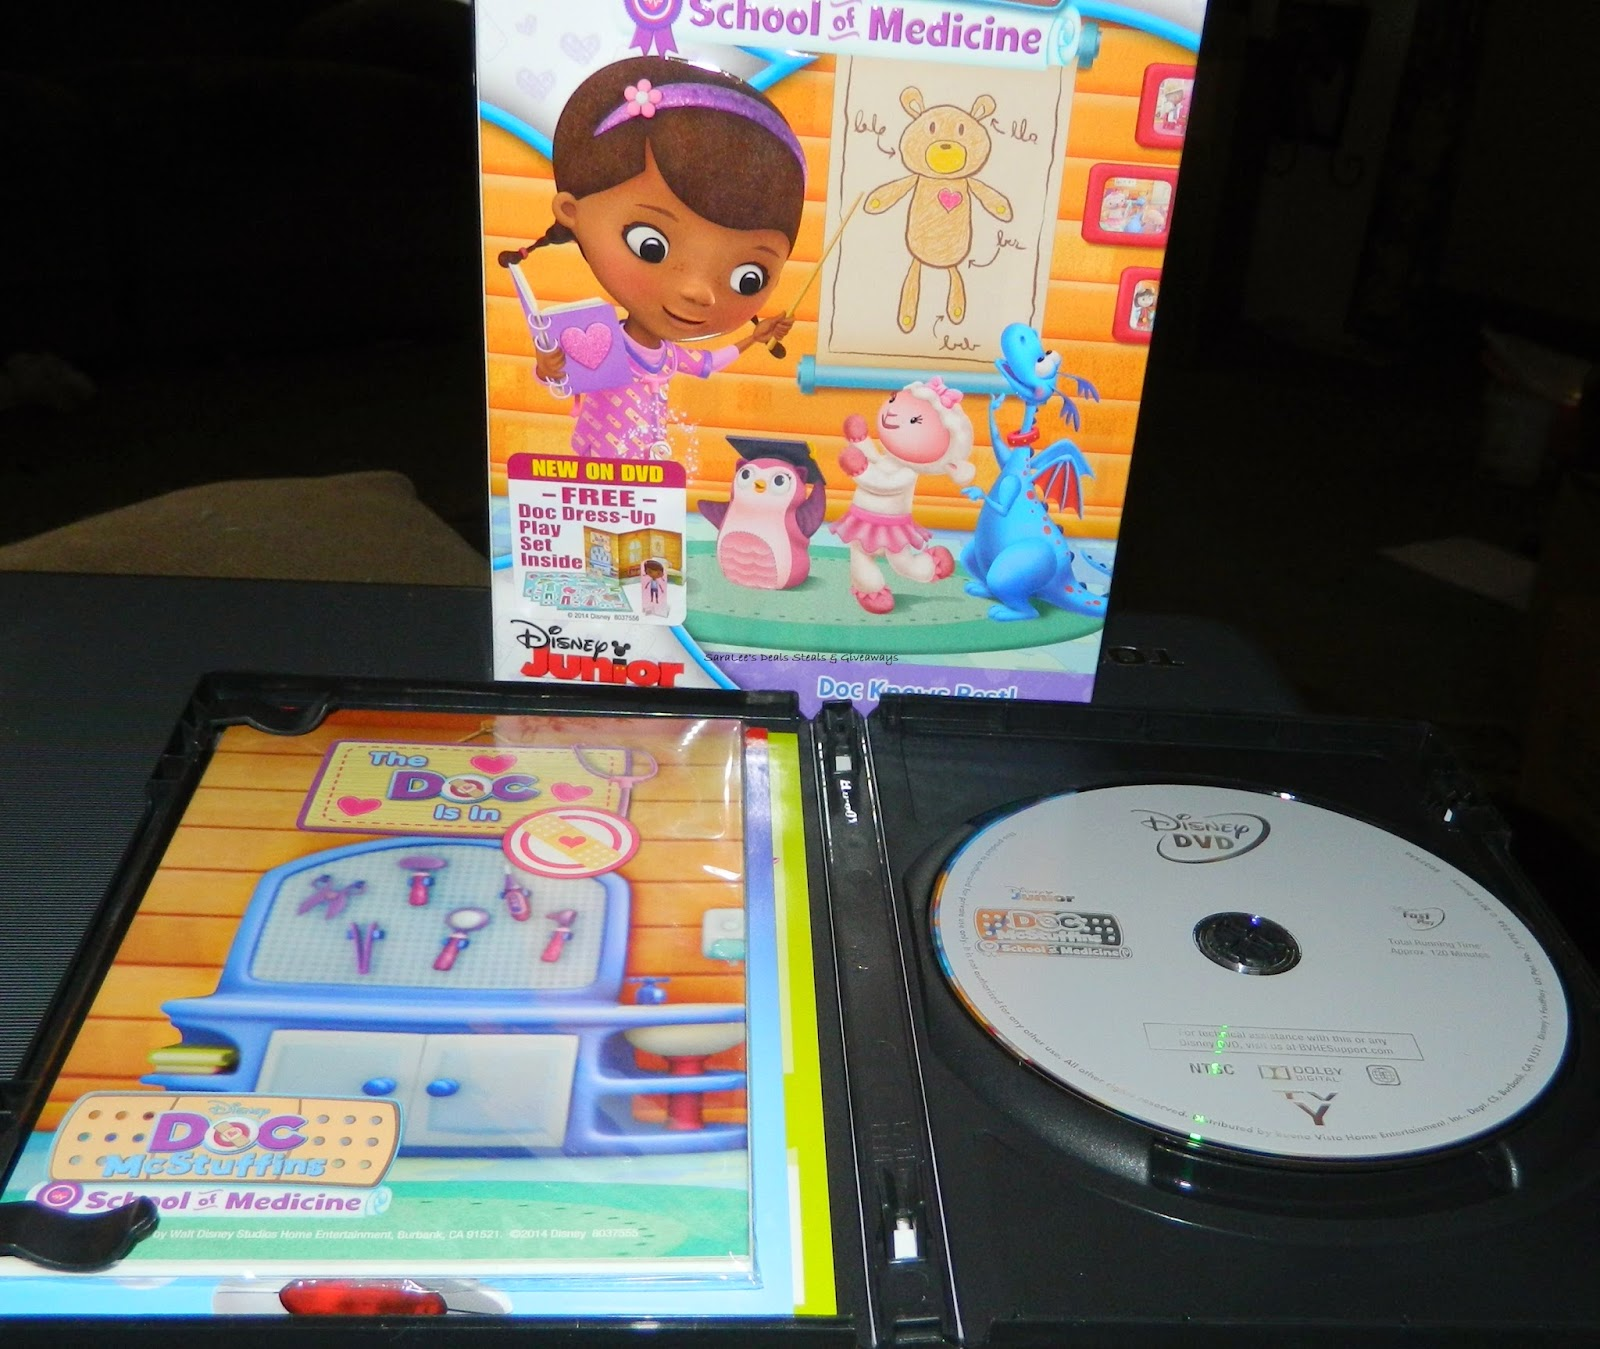 Doc McStuffins: School of Medicine Prize Pack Giveaway